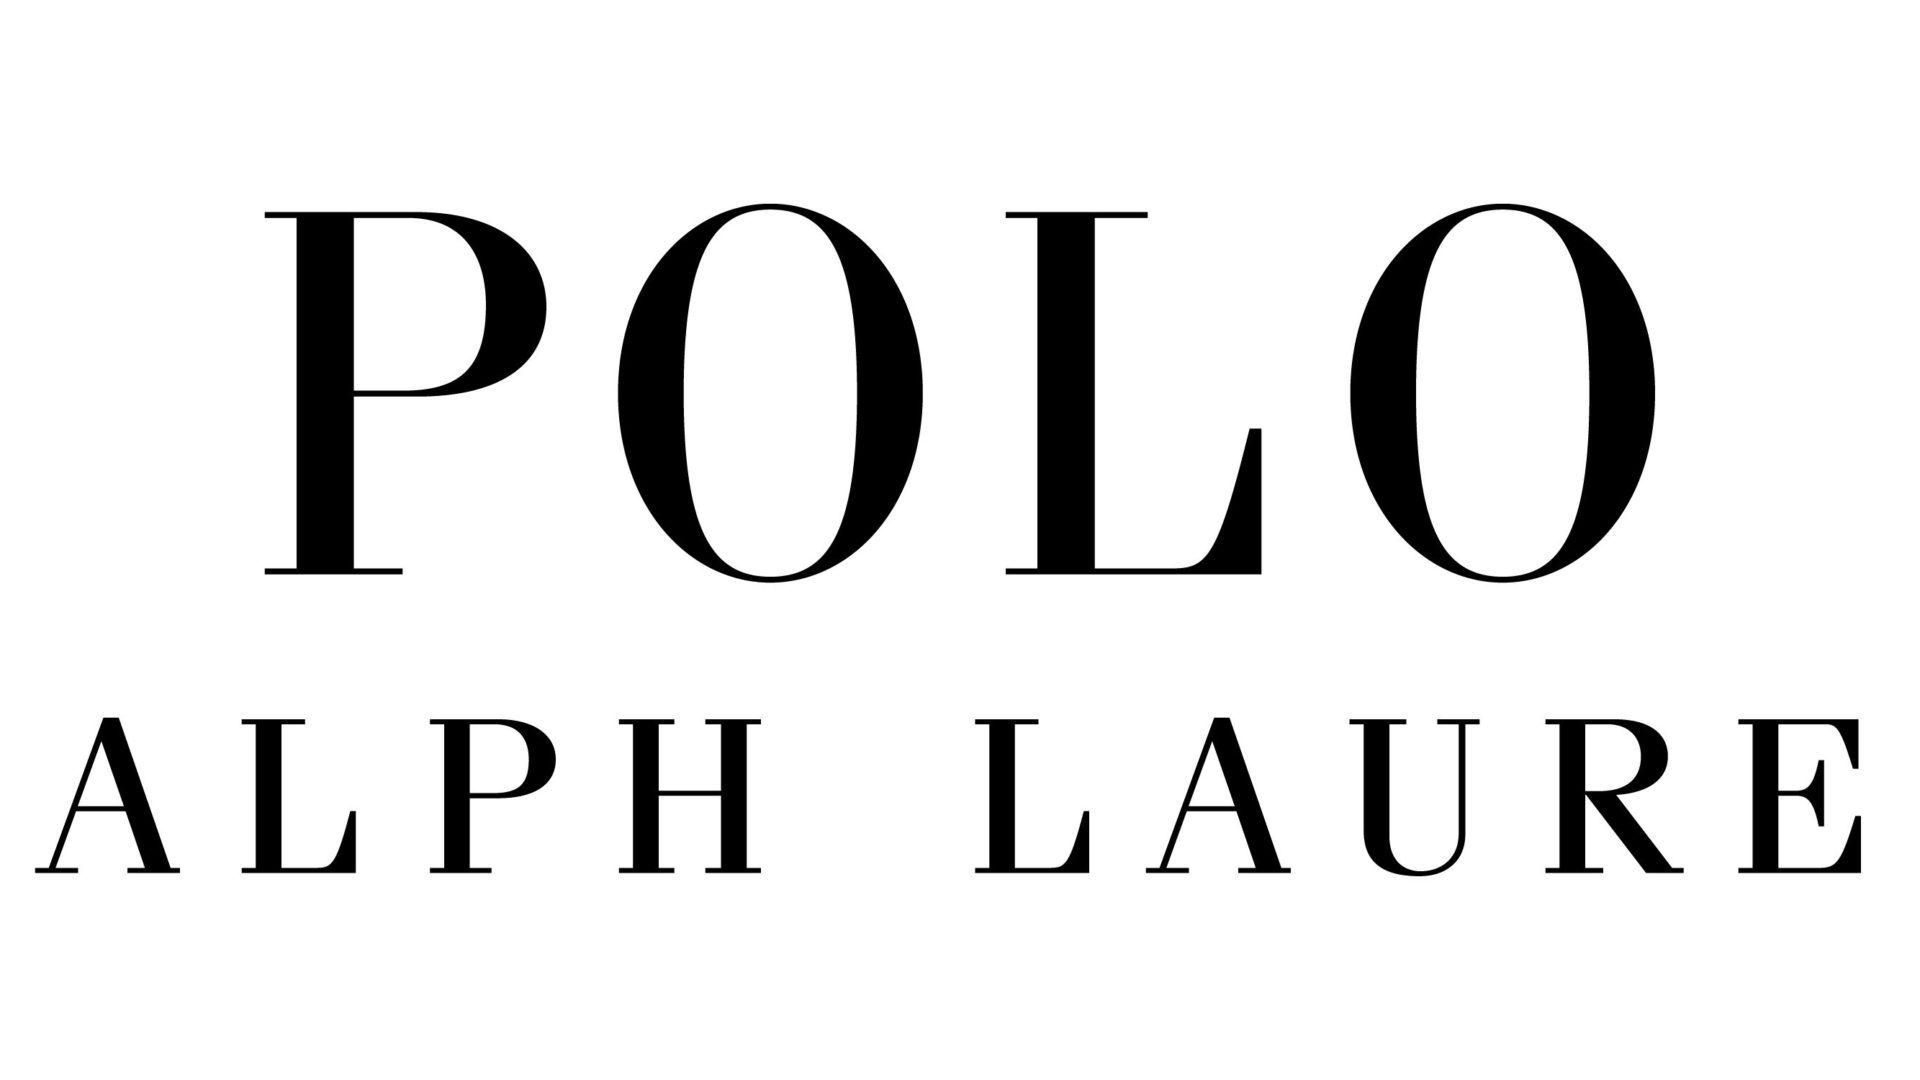 ralph lauren wallpaper HD